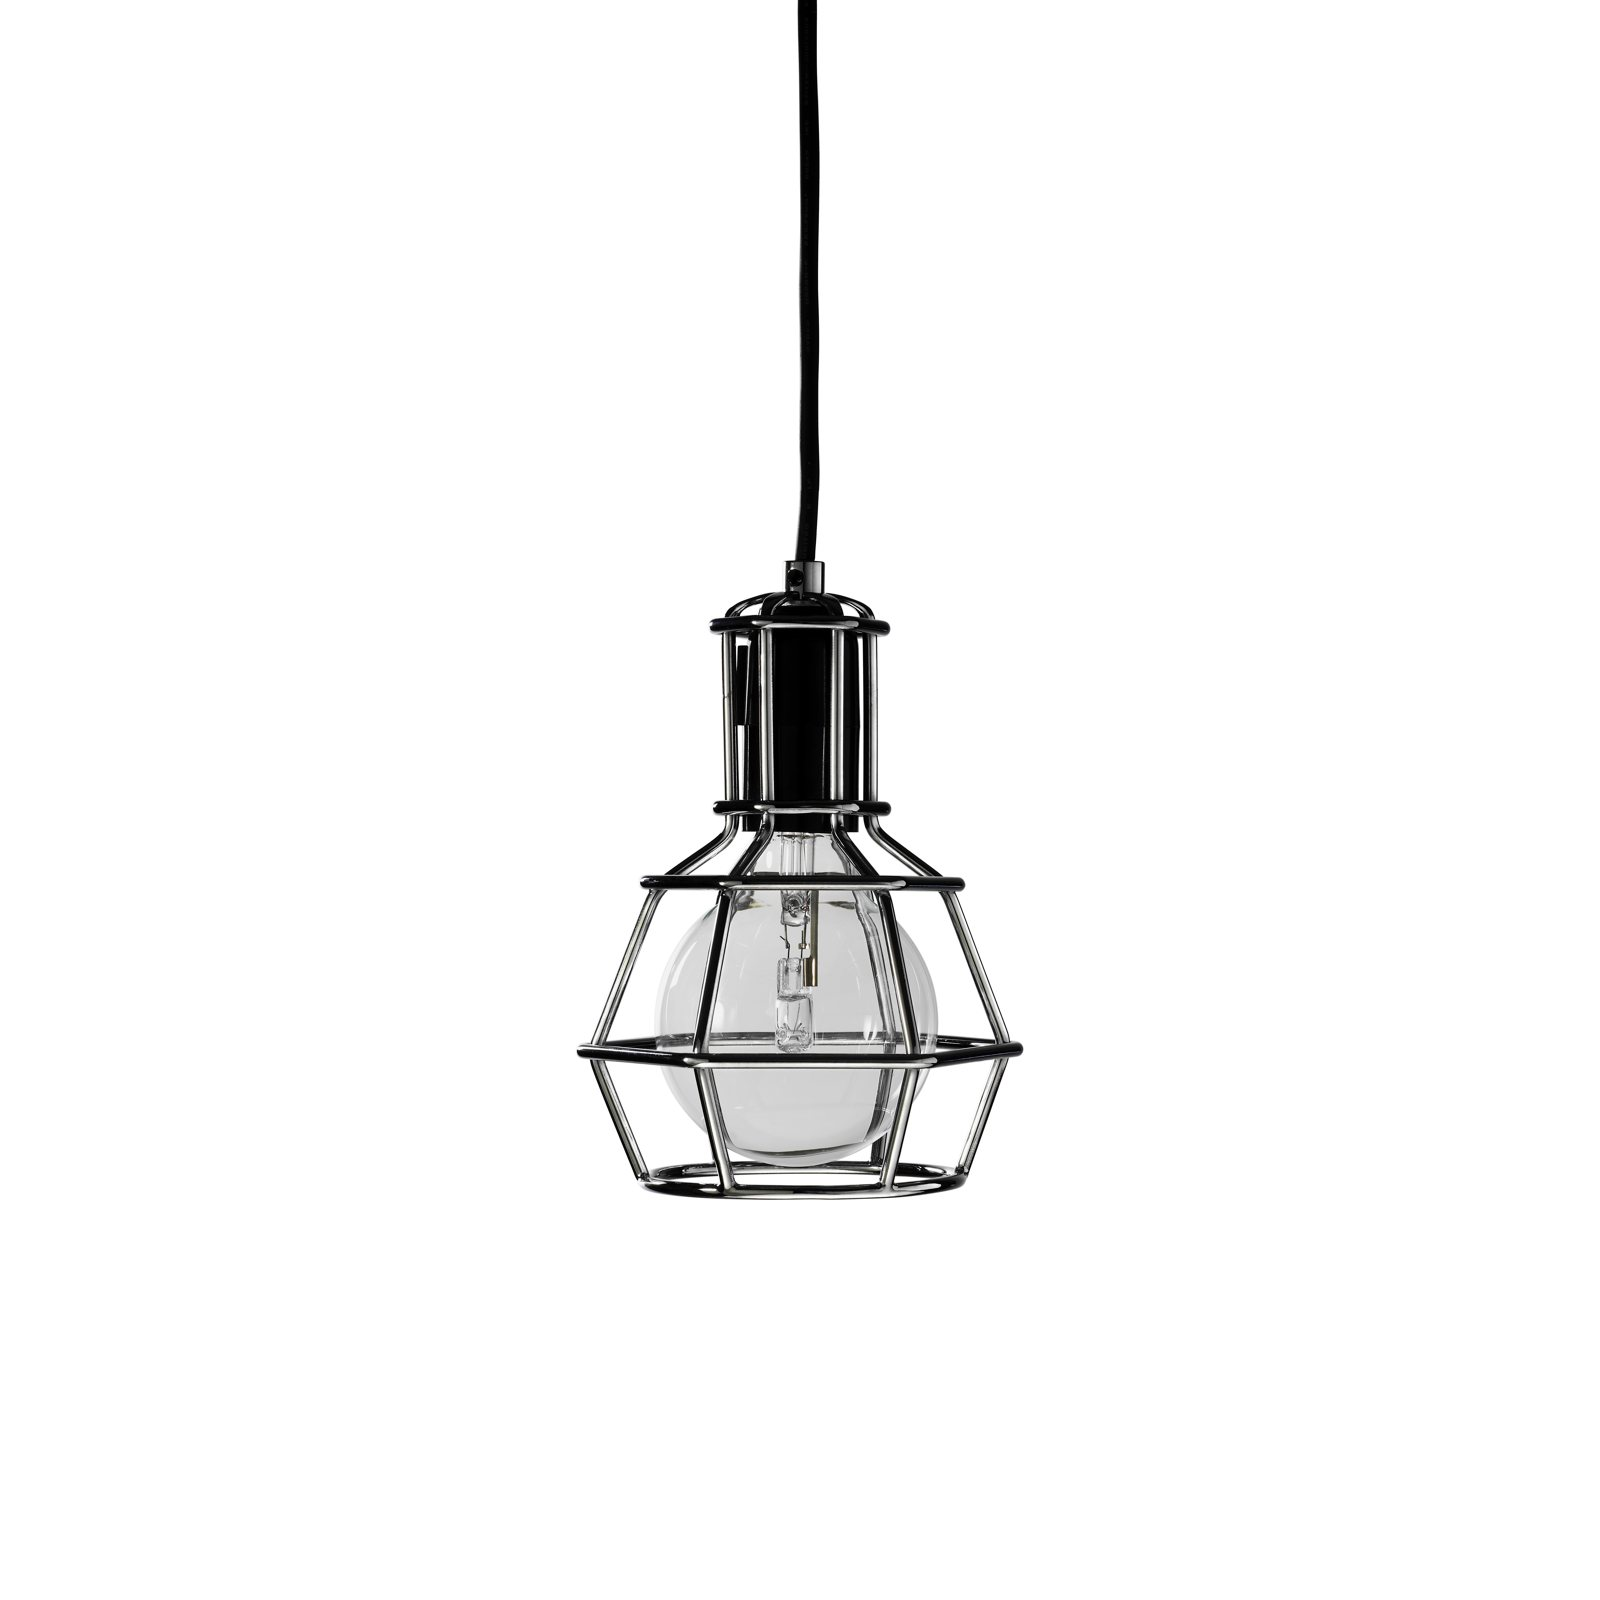 28 design house stockholm gold work lamp 8 smart pendants design house stockholm gold work lamp work lamp by form us with love for design house